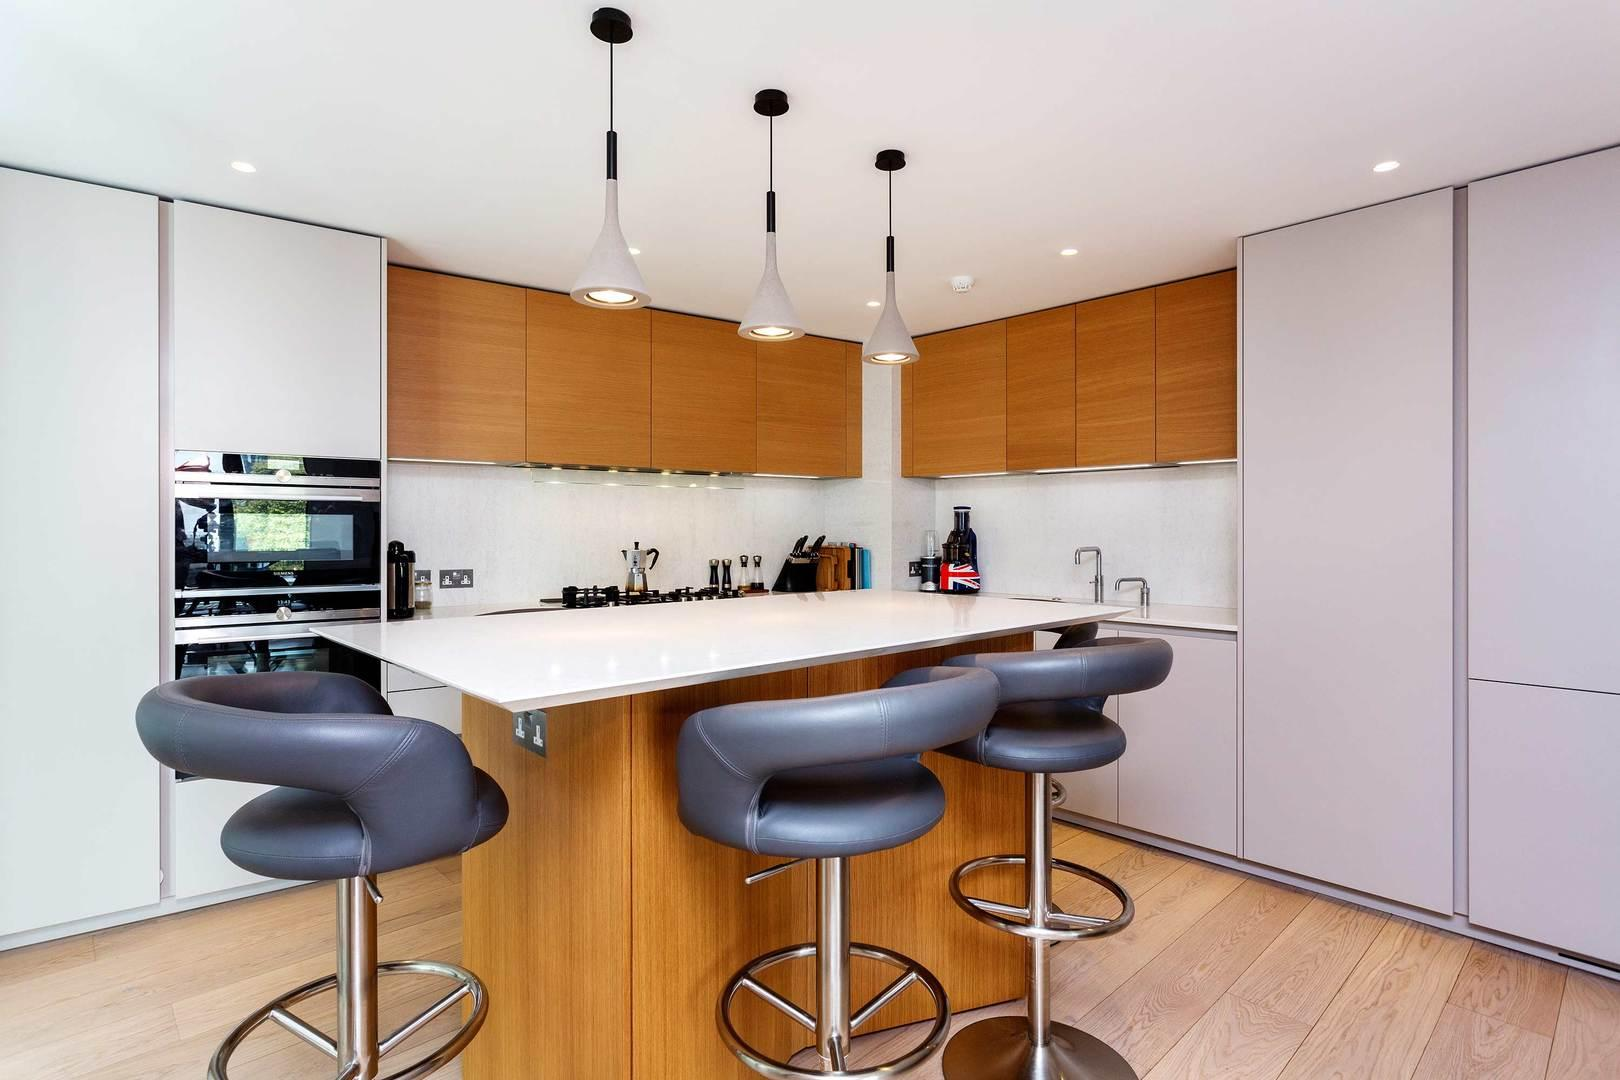 Property Image 2 - Chic Apartment in Amazing Central London Location